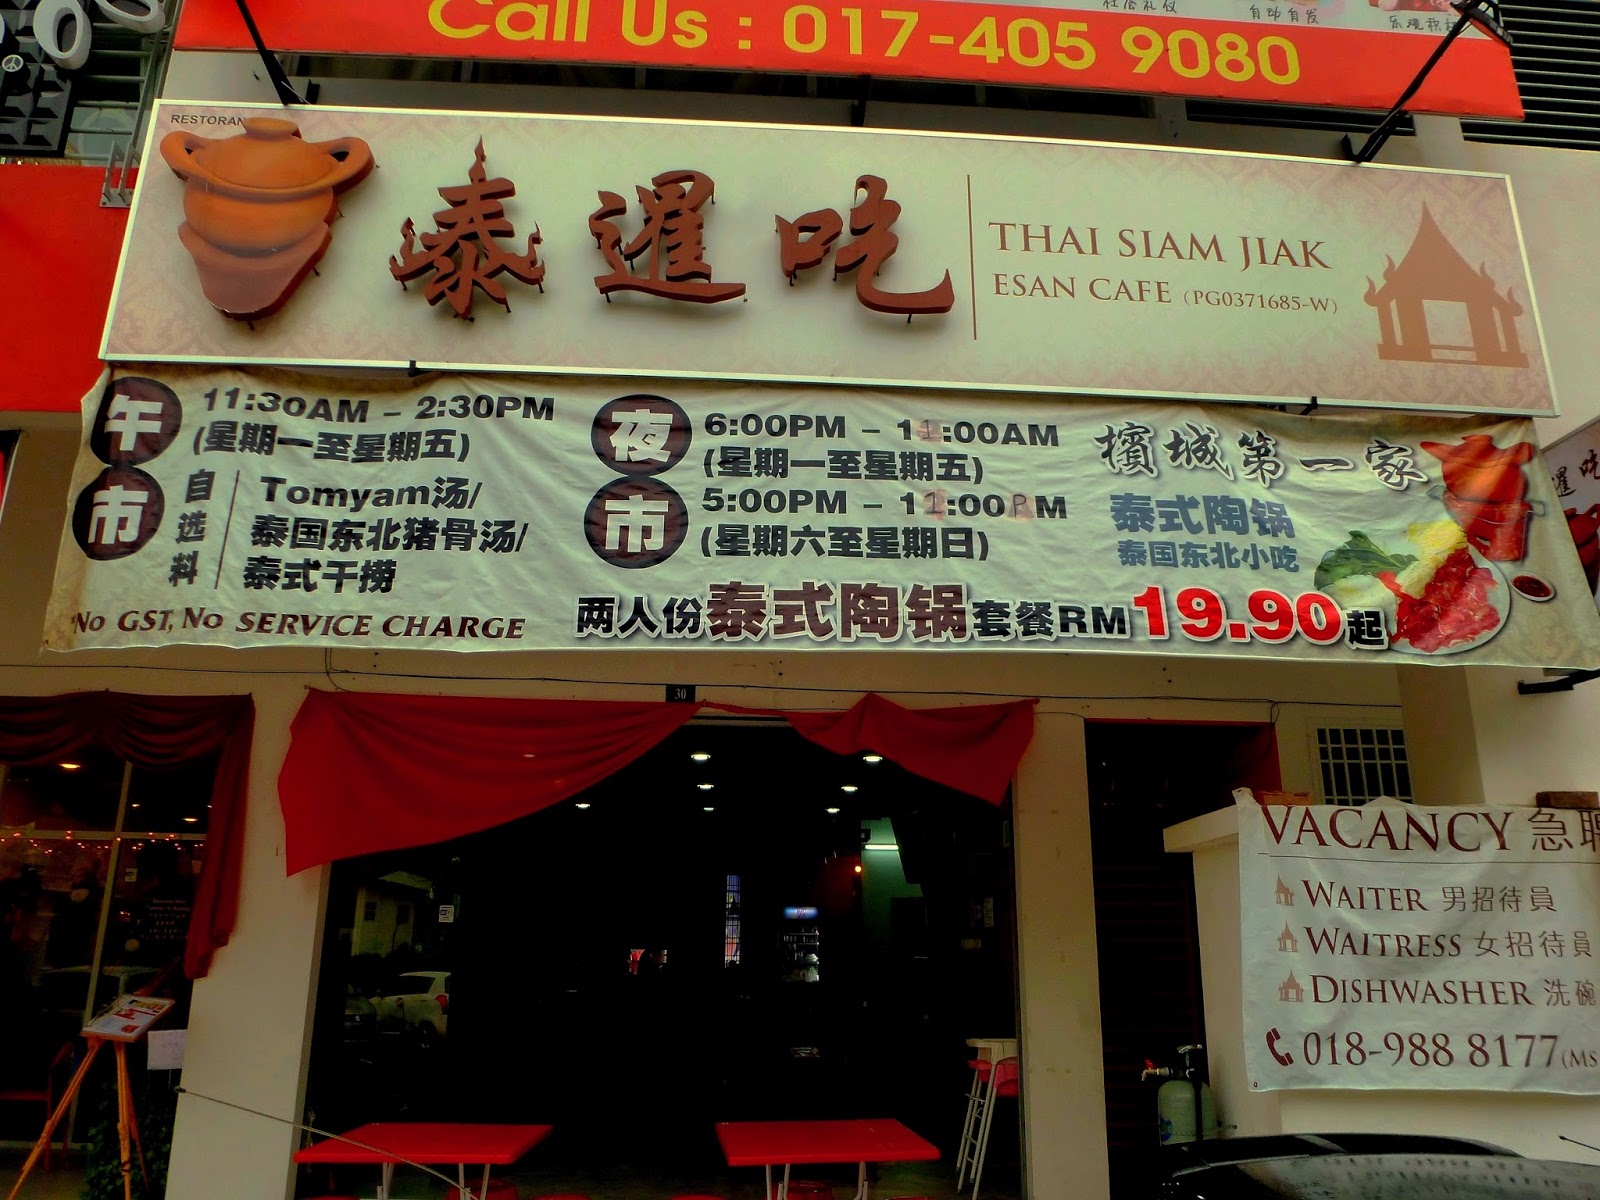 penang food for thought thai siam jiak